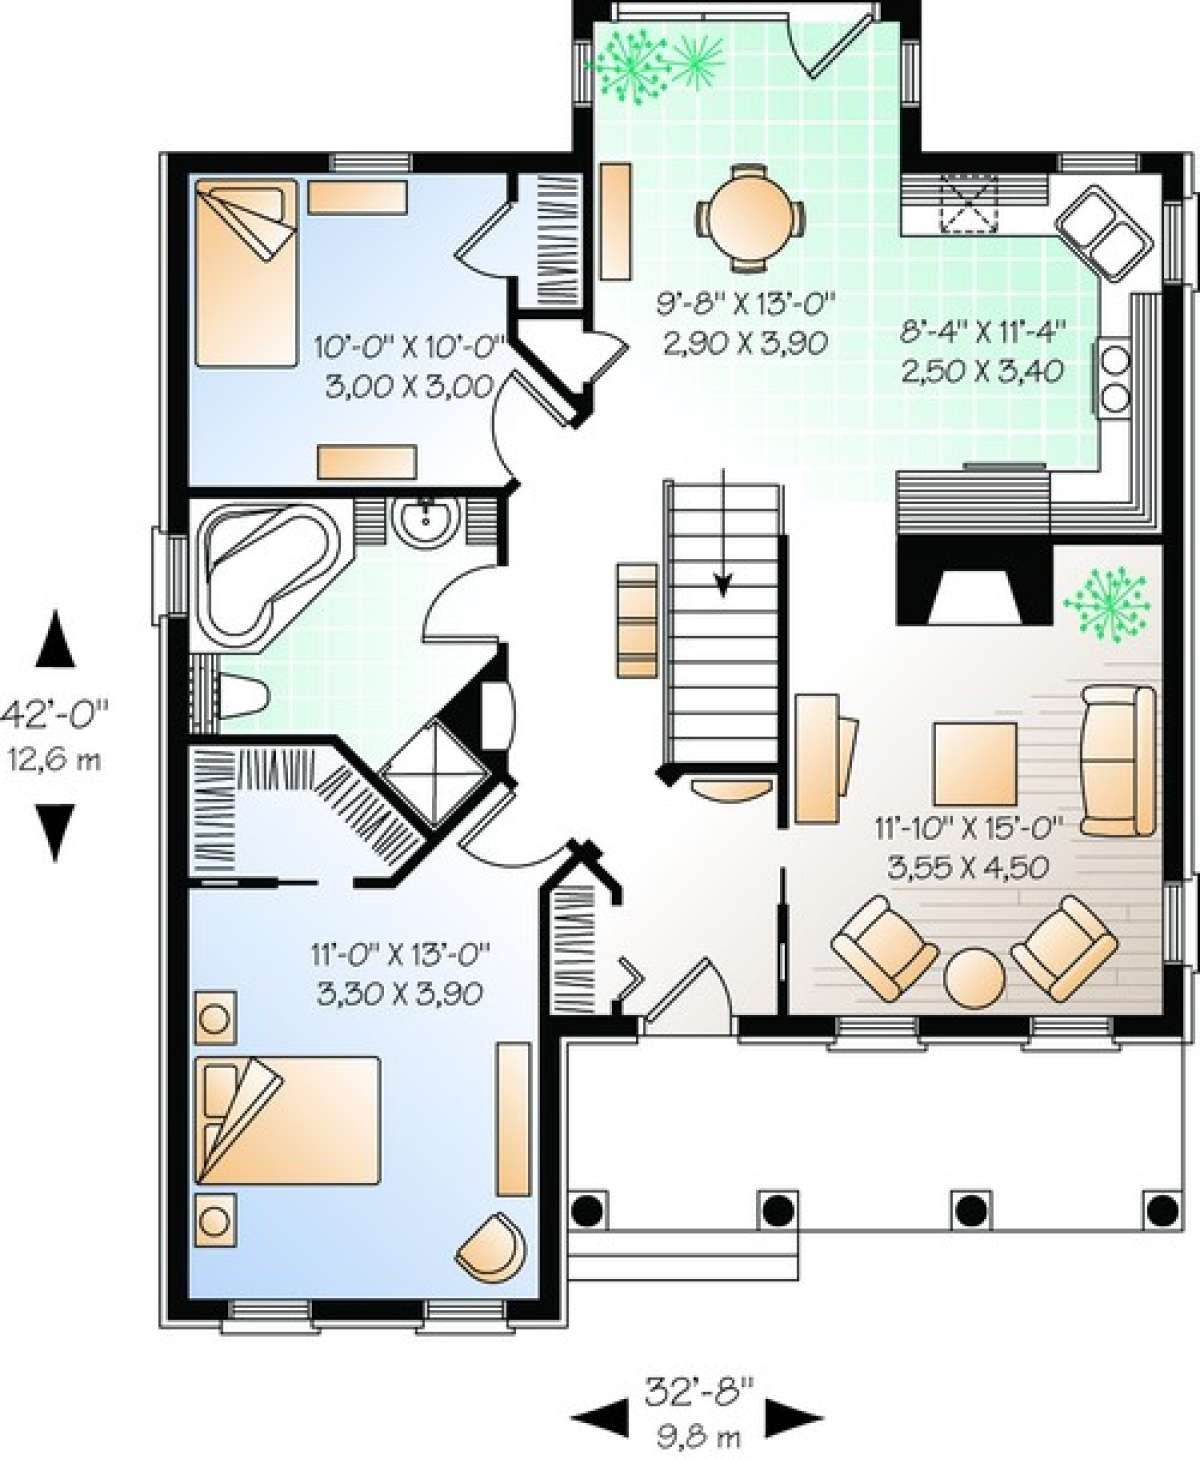 House Plan 034 00283 European Plan 1 094 Square Feet 2 Bedrooms 1 Bathroom In 2020 House Plans Small House Design Plans Family House Plans